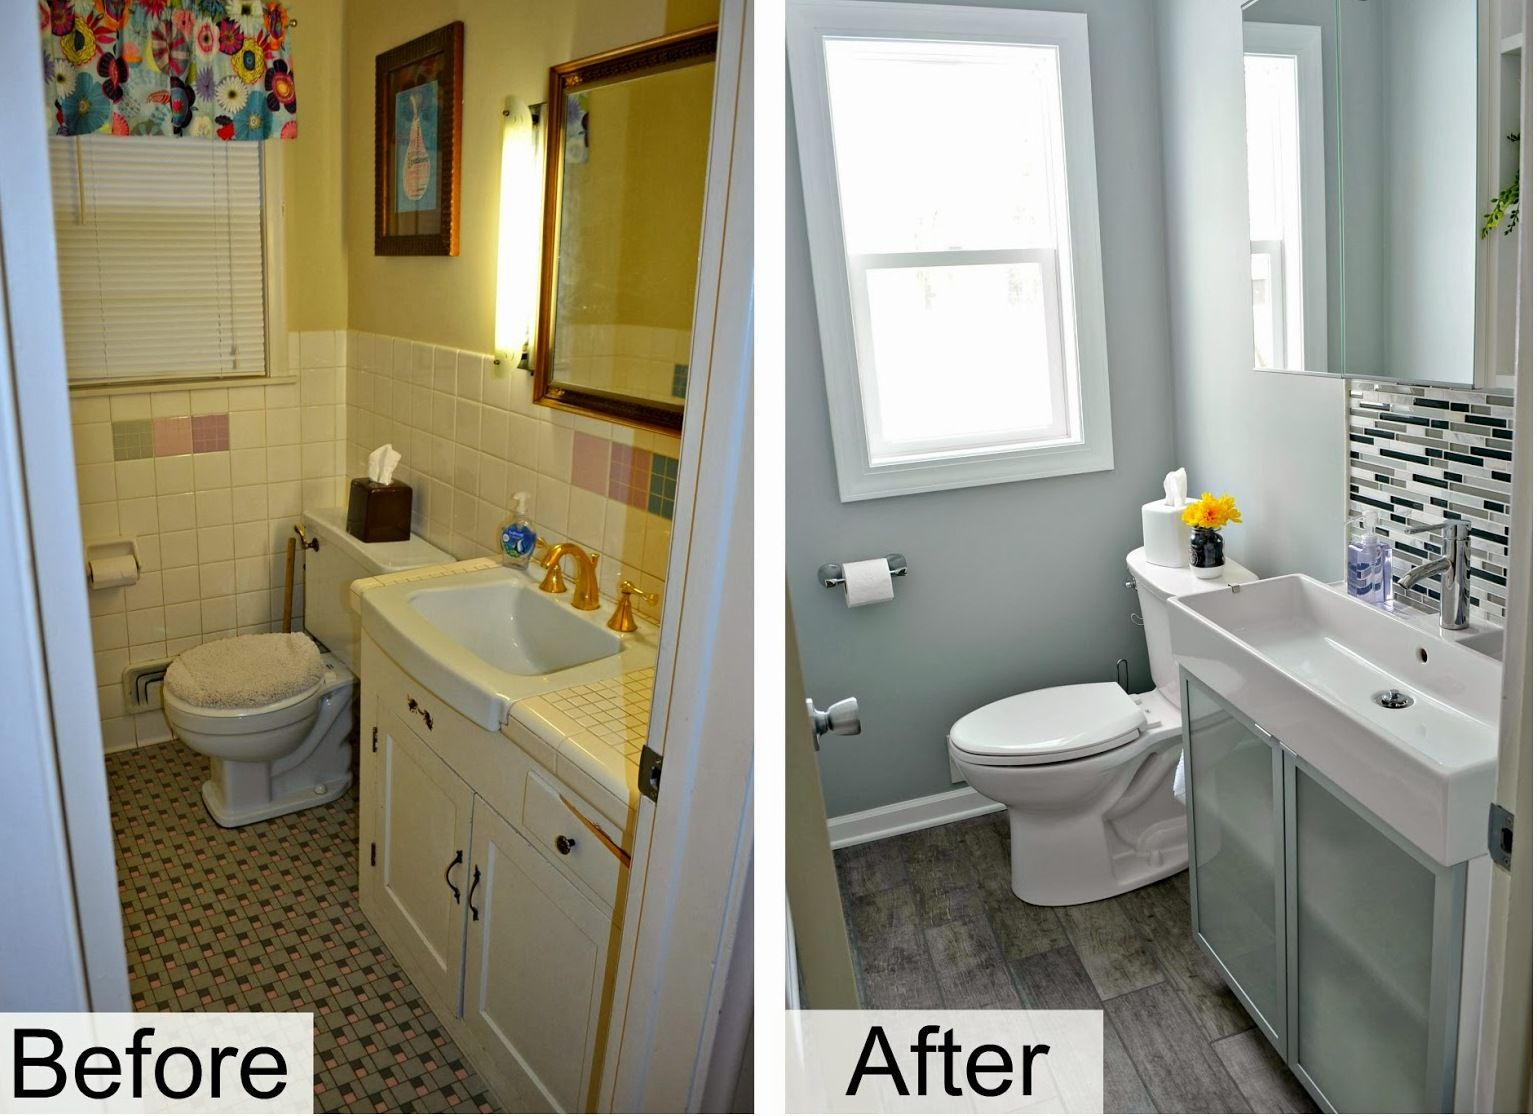 Diy Bathroom Remodel Ideas For Average People  Diy Bathroom Remodel Ideas For Average People